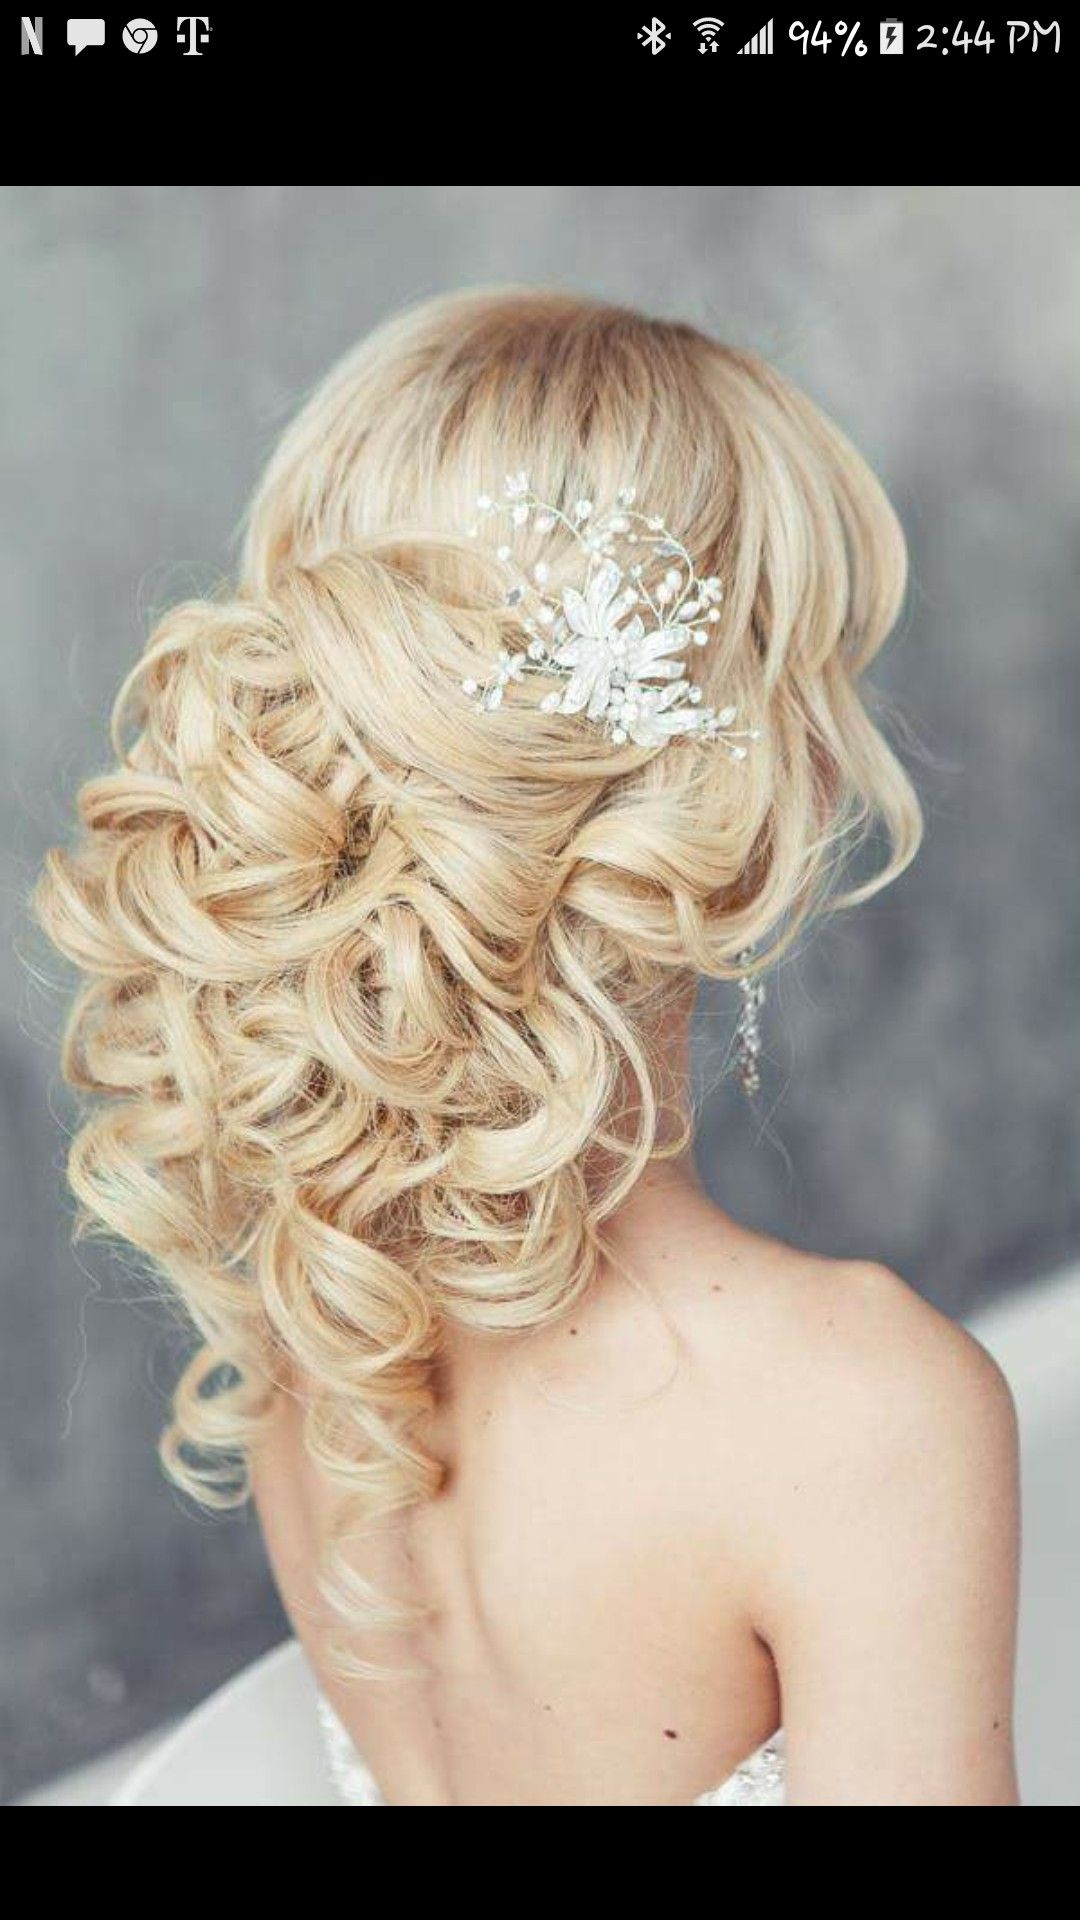 Beautiful hairstyle loved it e day Pinterest